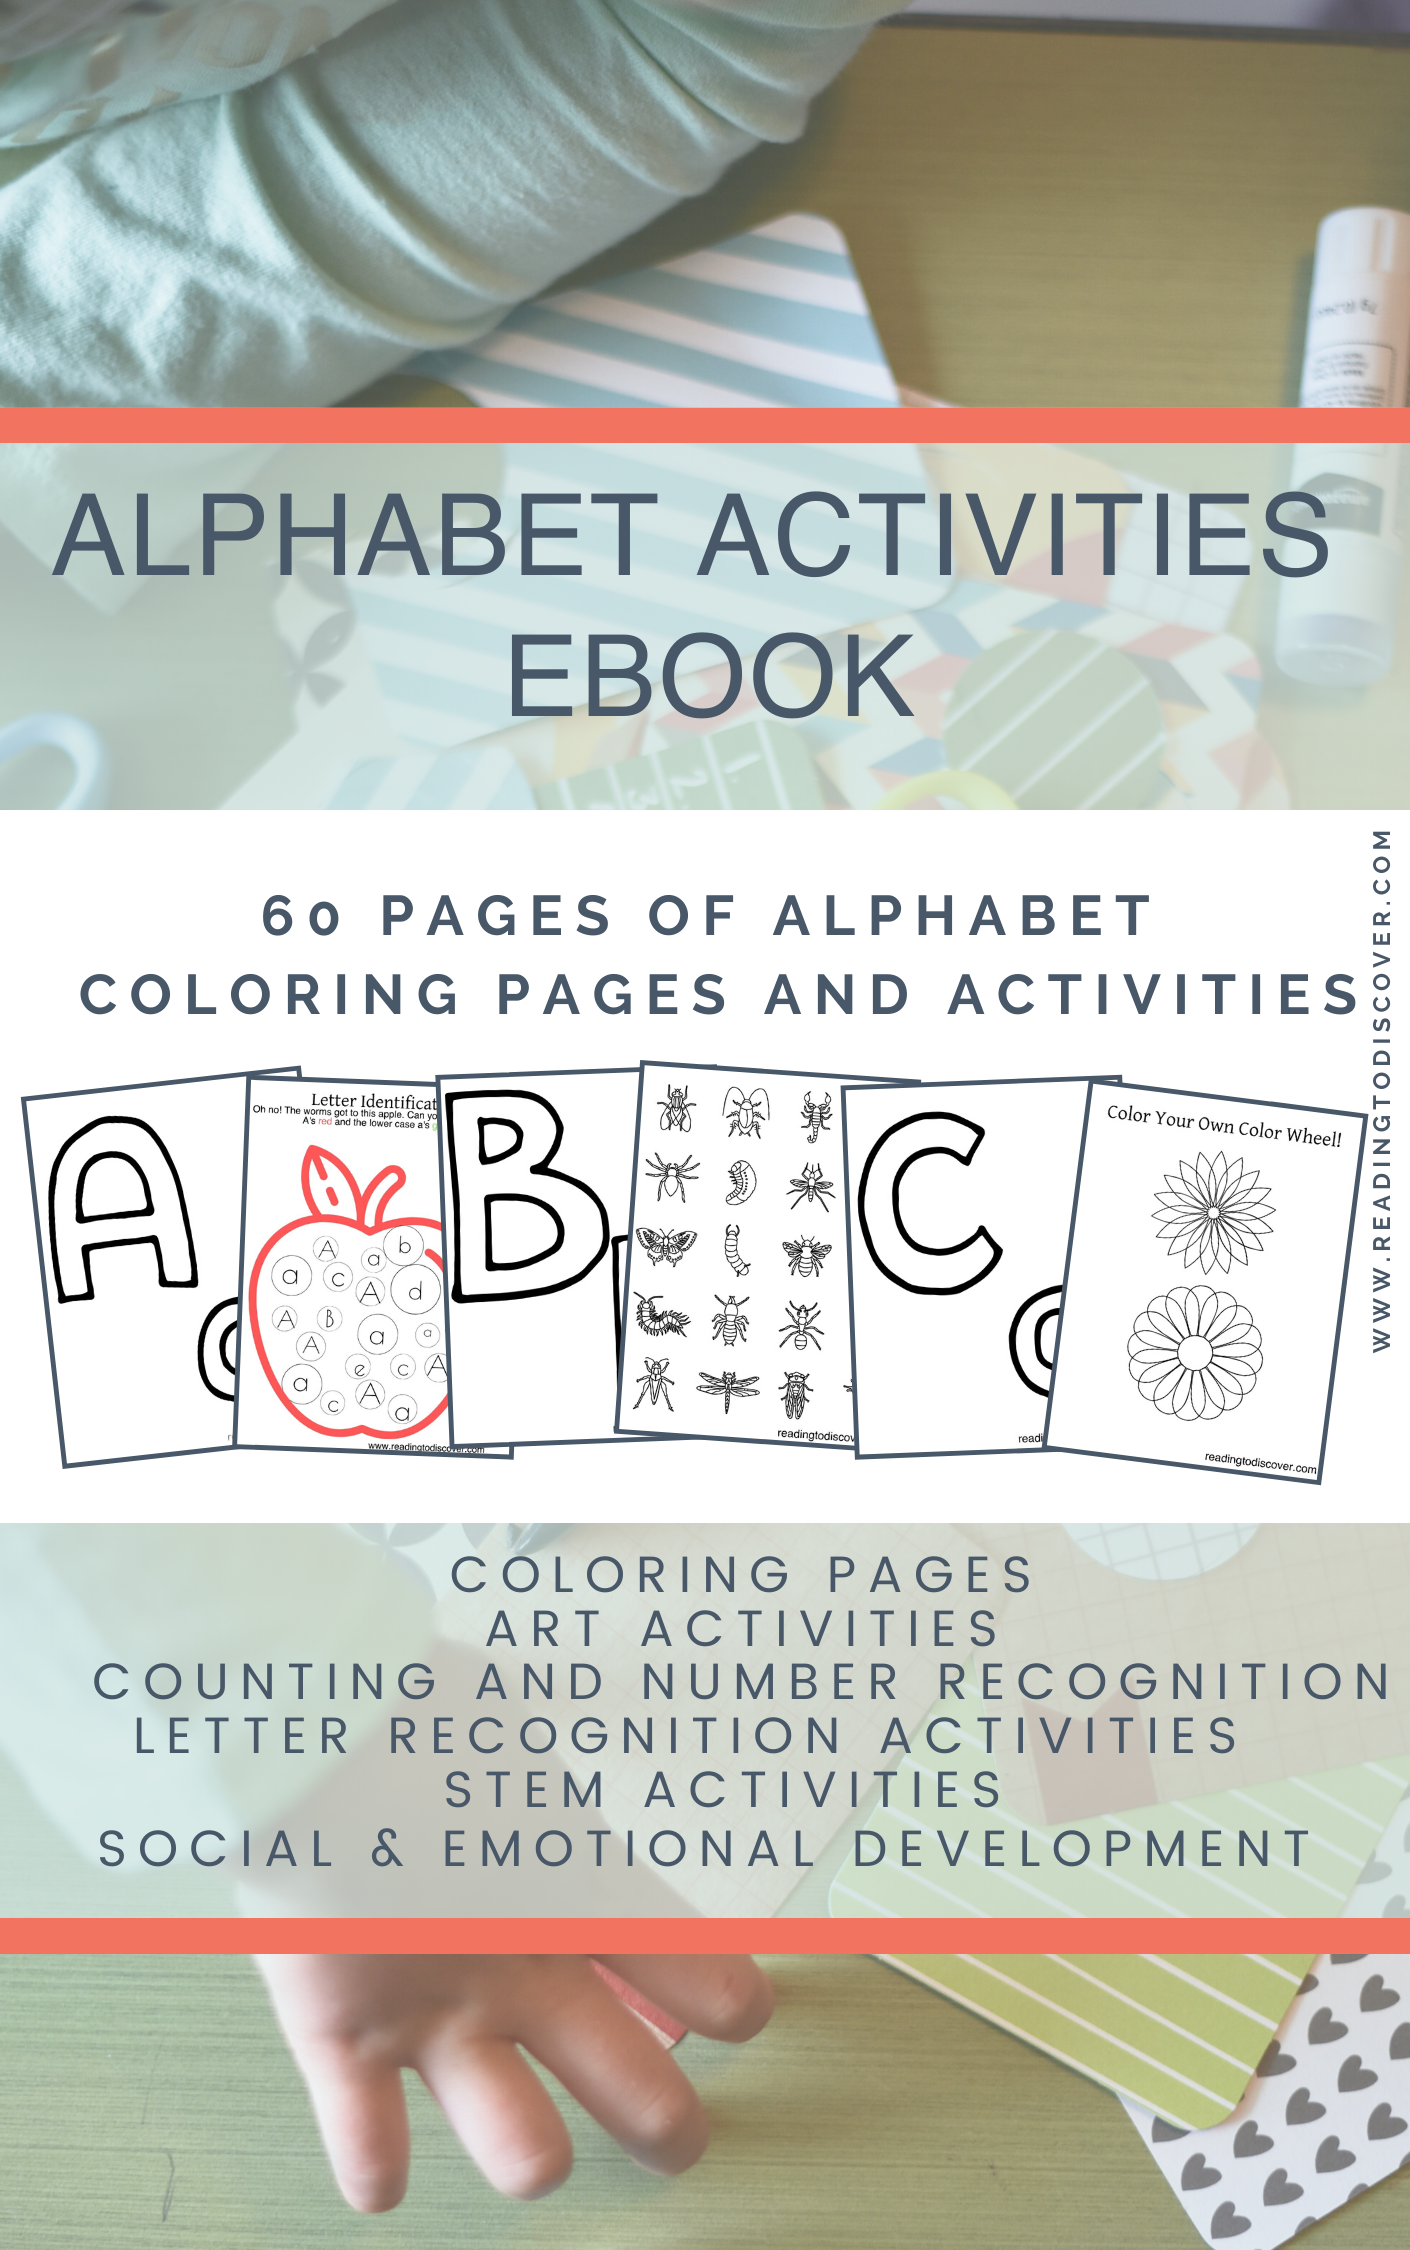 Printable Alphabet Activities for preschoolers or kindergartners. These free printable sheets for preschoolers are full of hands-on preschool crafts and activity ideas. This free alphabet activities ebook is available now! Repin then visit www.readingtodiscover.com/alphabet_ebook to download your copy.